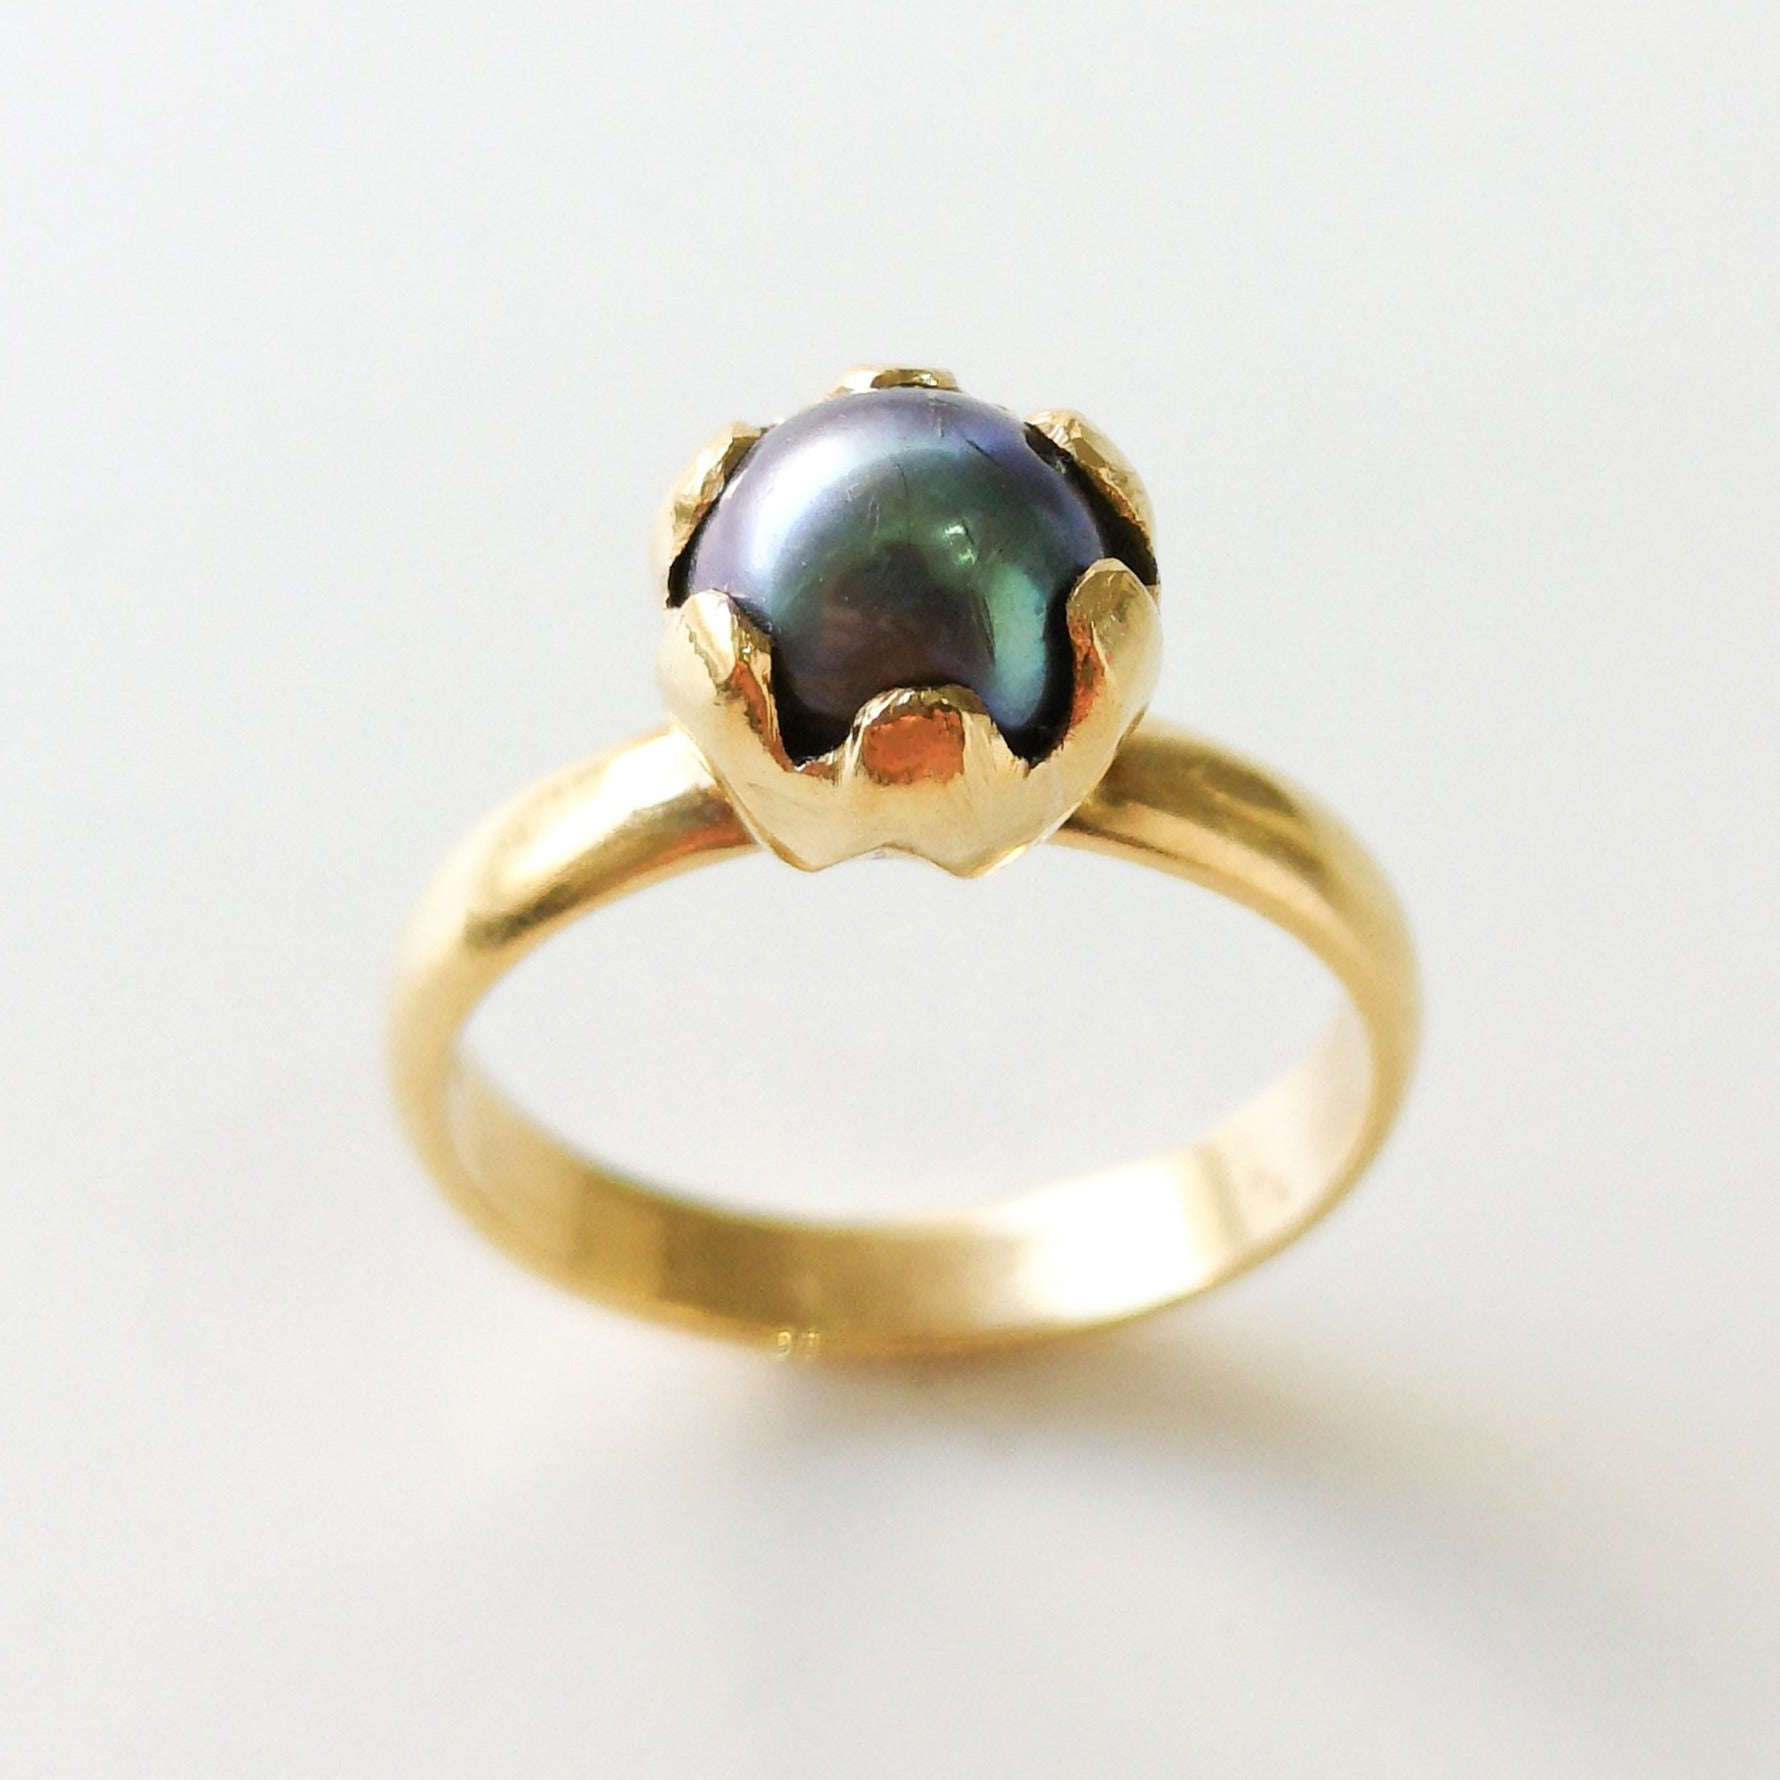 22ct Gold Dress Ring set with Tahitian Cultured Pearl (6.7g) LR-3529